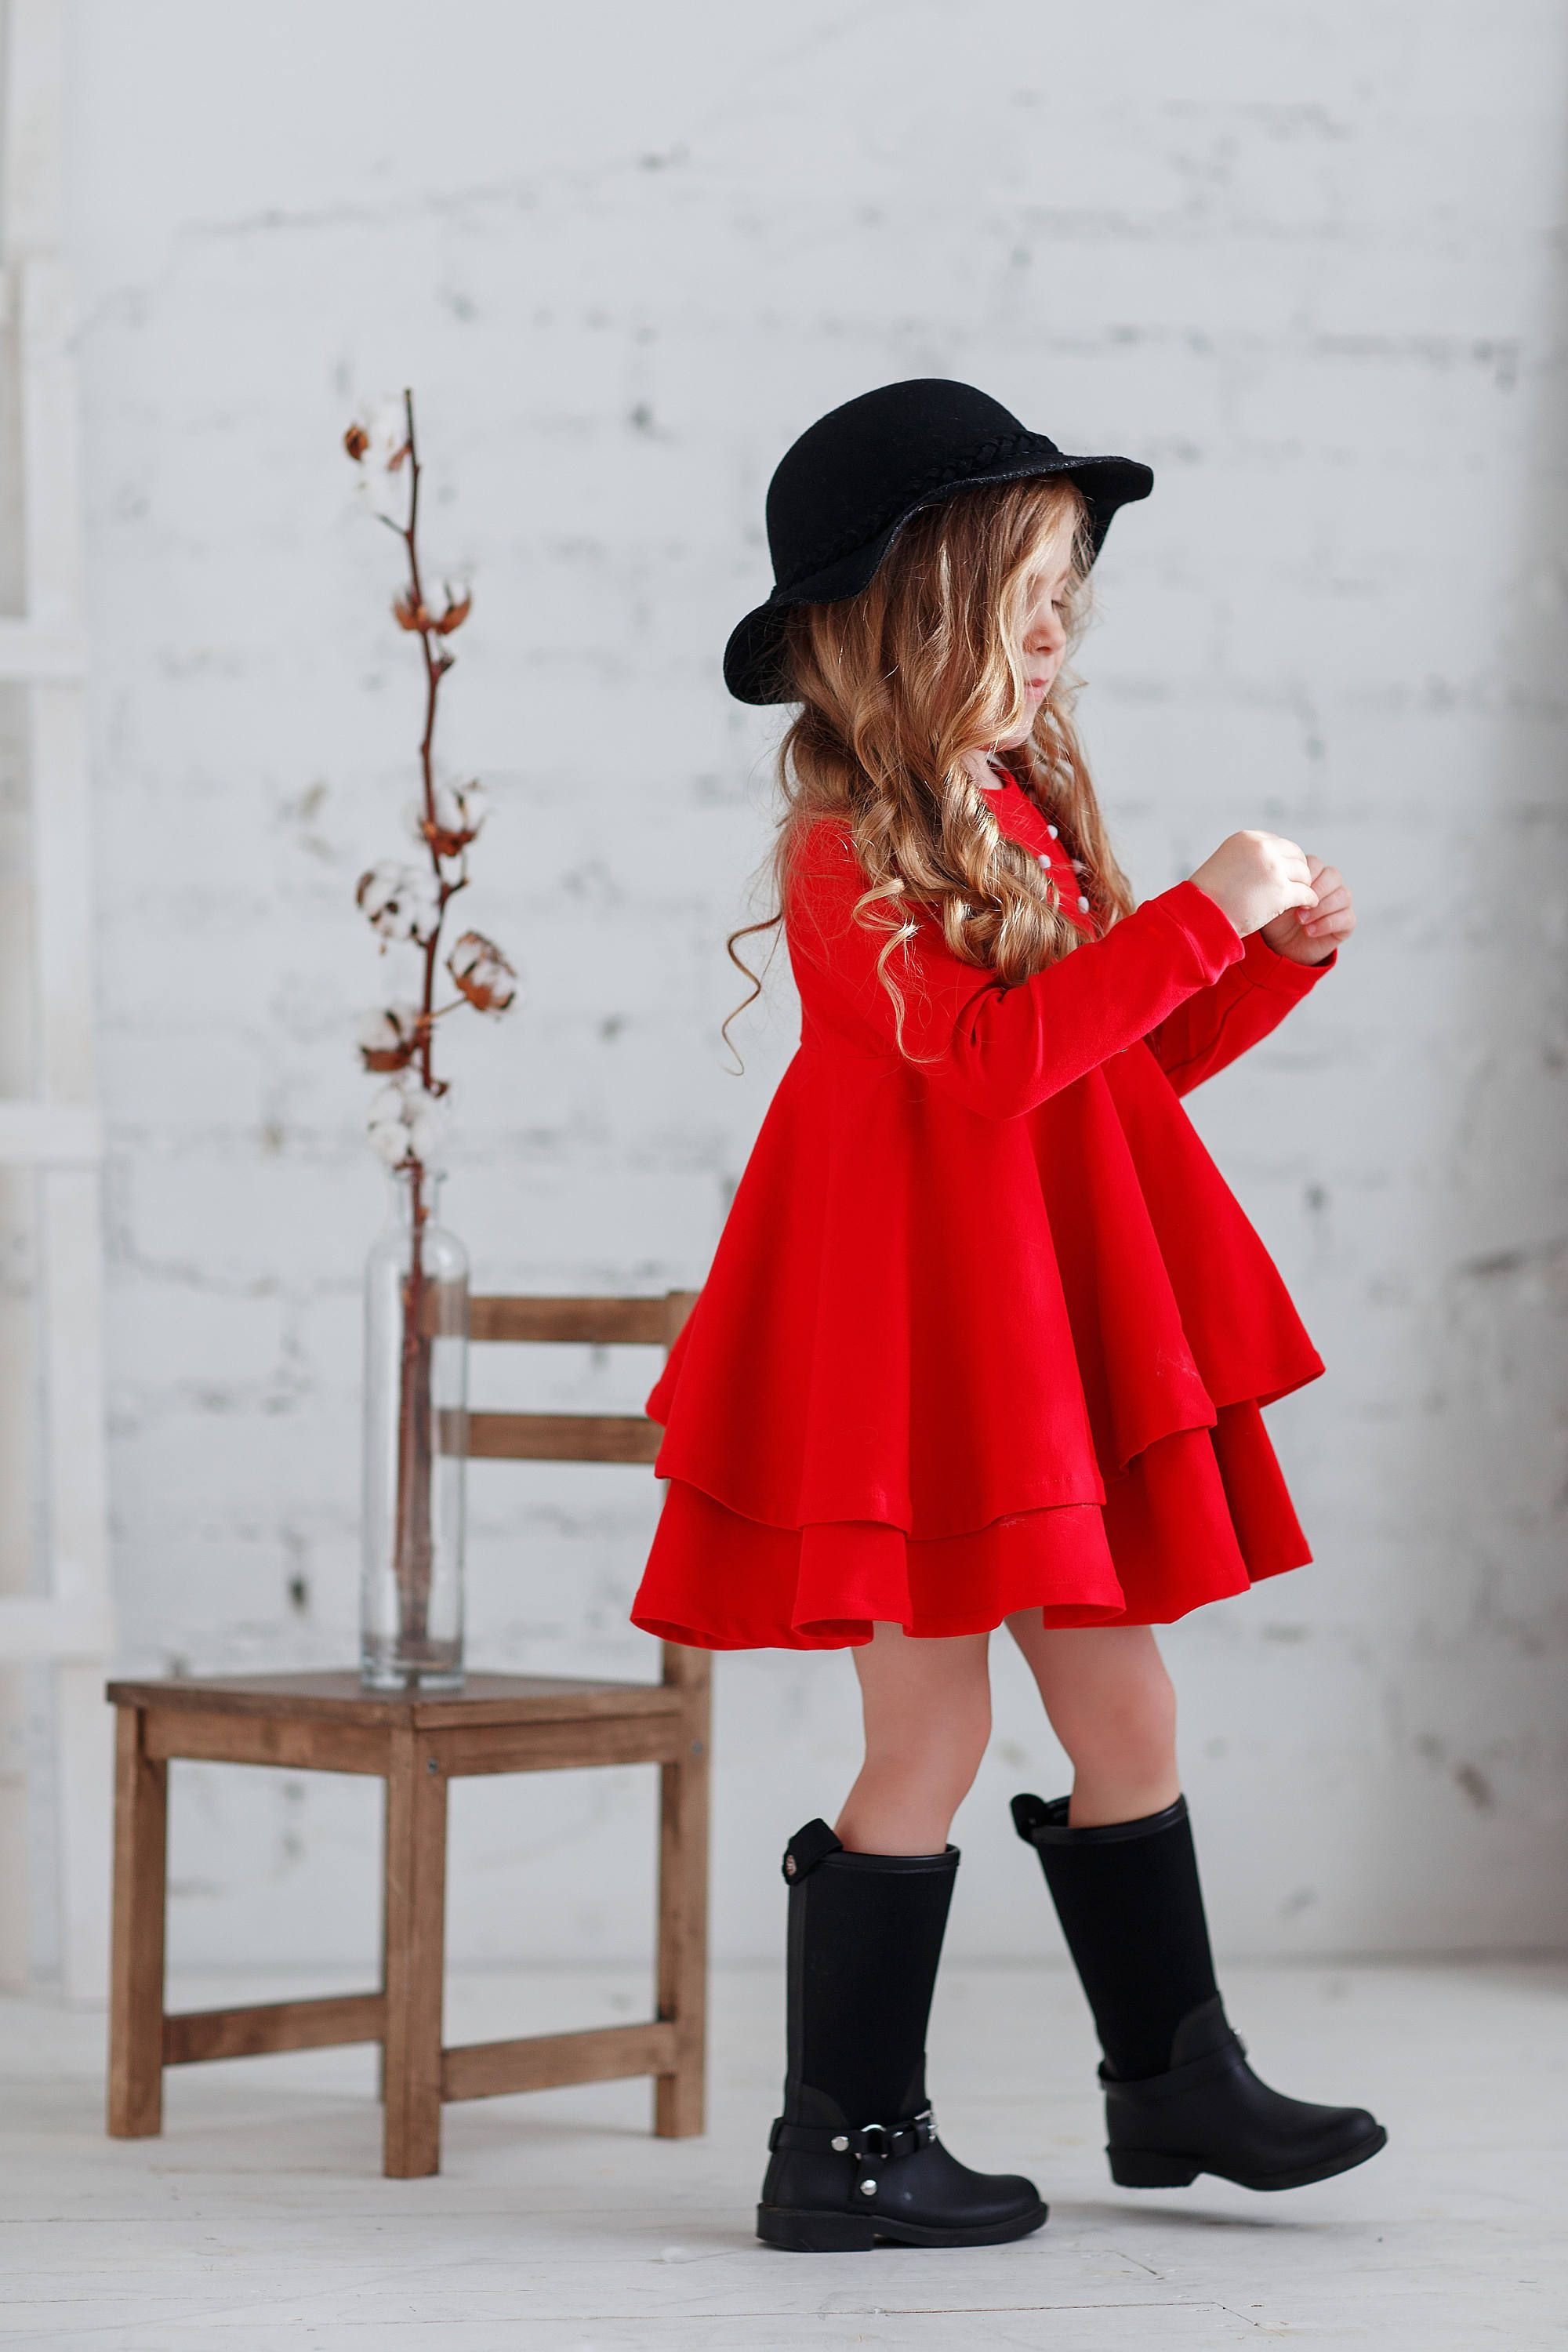 Red Cotton Girls Dress Christmas Red Toddler Dress Long Sleeve Etsy Red Toddler Dress Toddler Dress Kids Christmas Outfits [ 3000 x 2000 Pixel ]